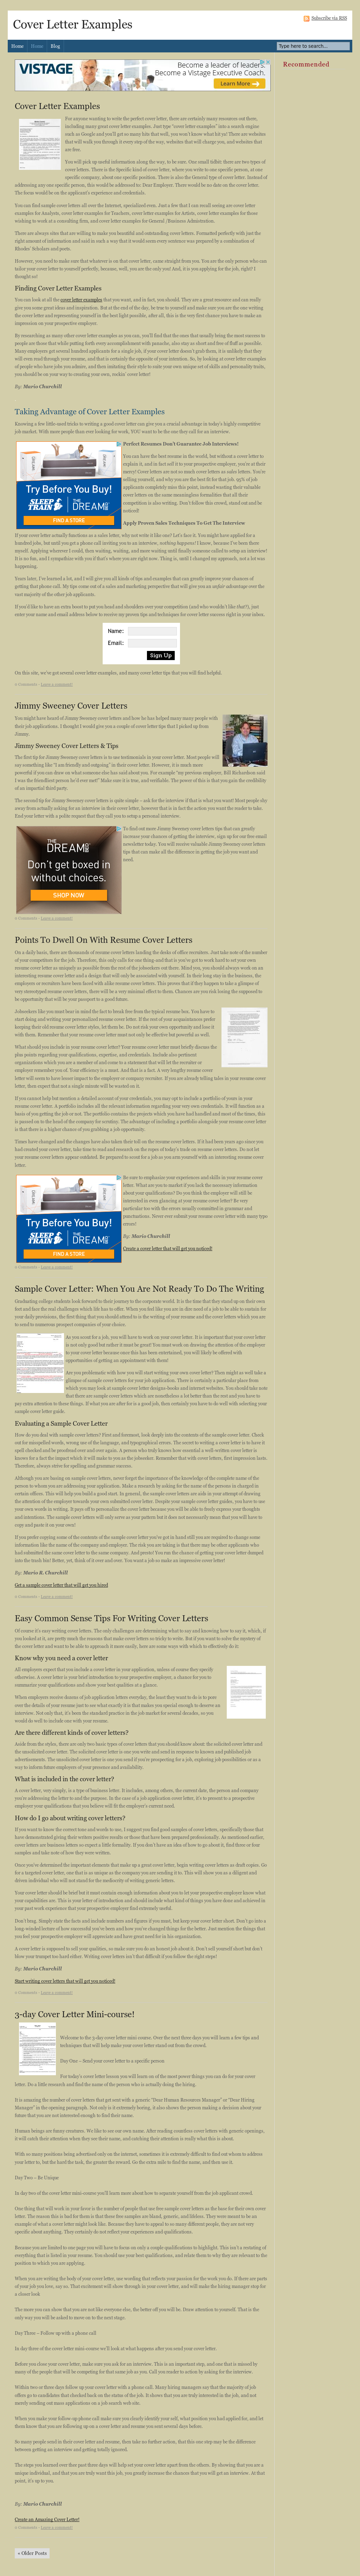 Cover Letter Examples Competitors, Revenue and Employees ...